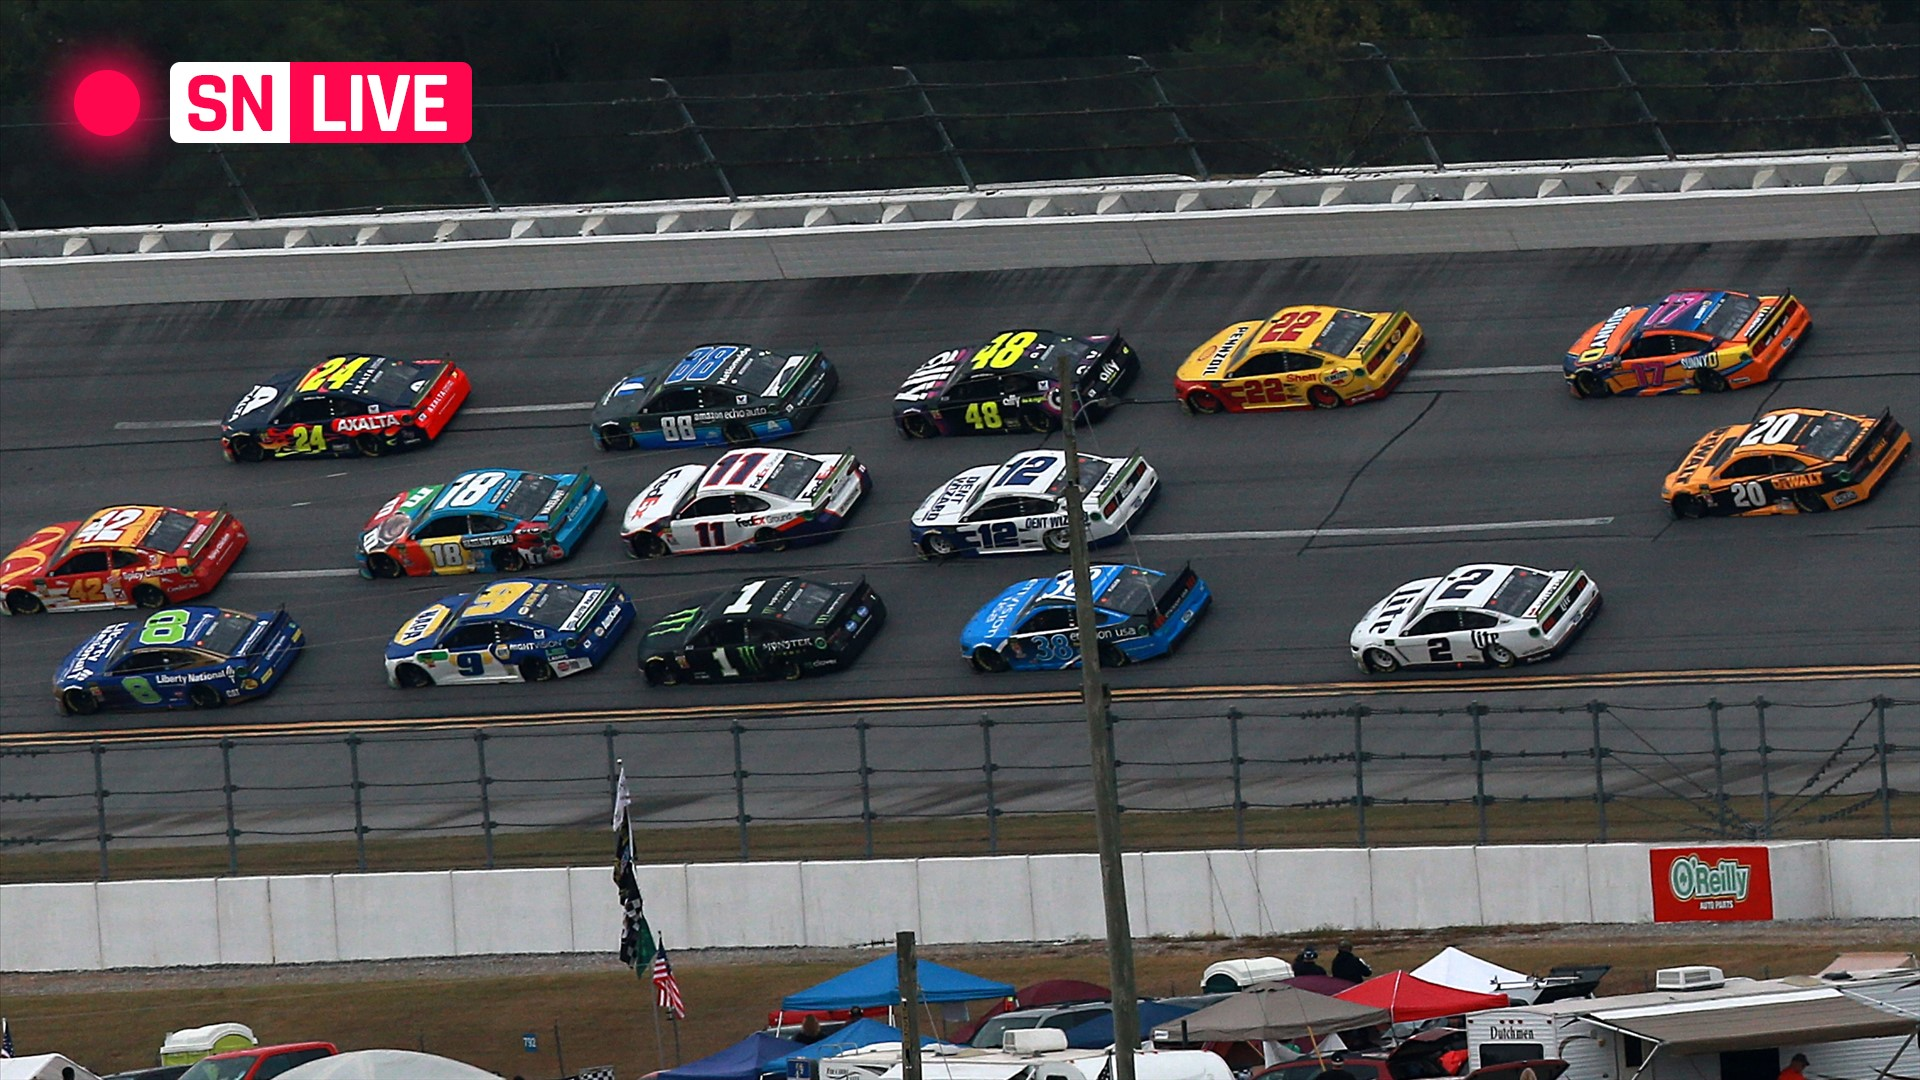 NASCAR at Talladega live race updates, results, highlights from the Geico 500 1